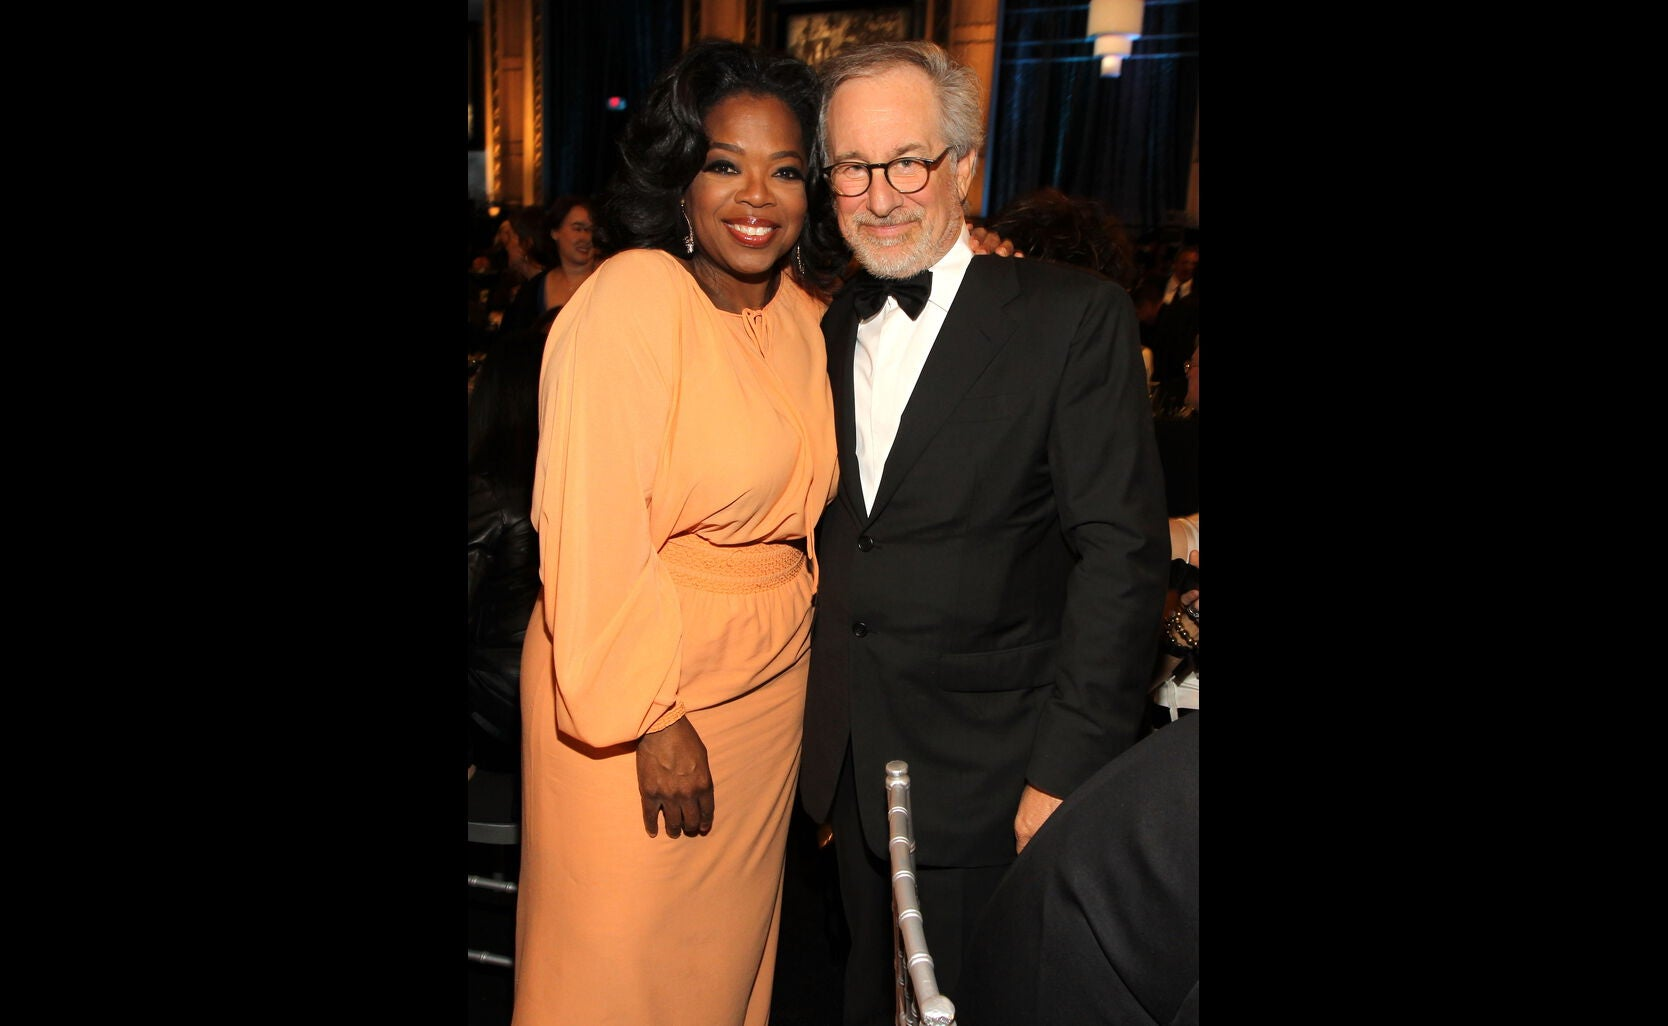 Oprah and Steven Spielberg